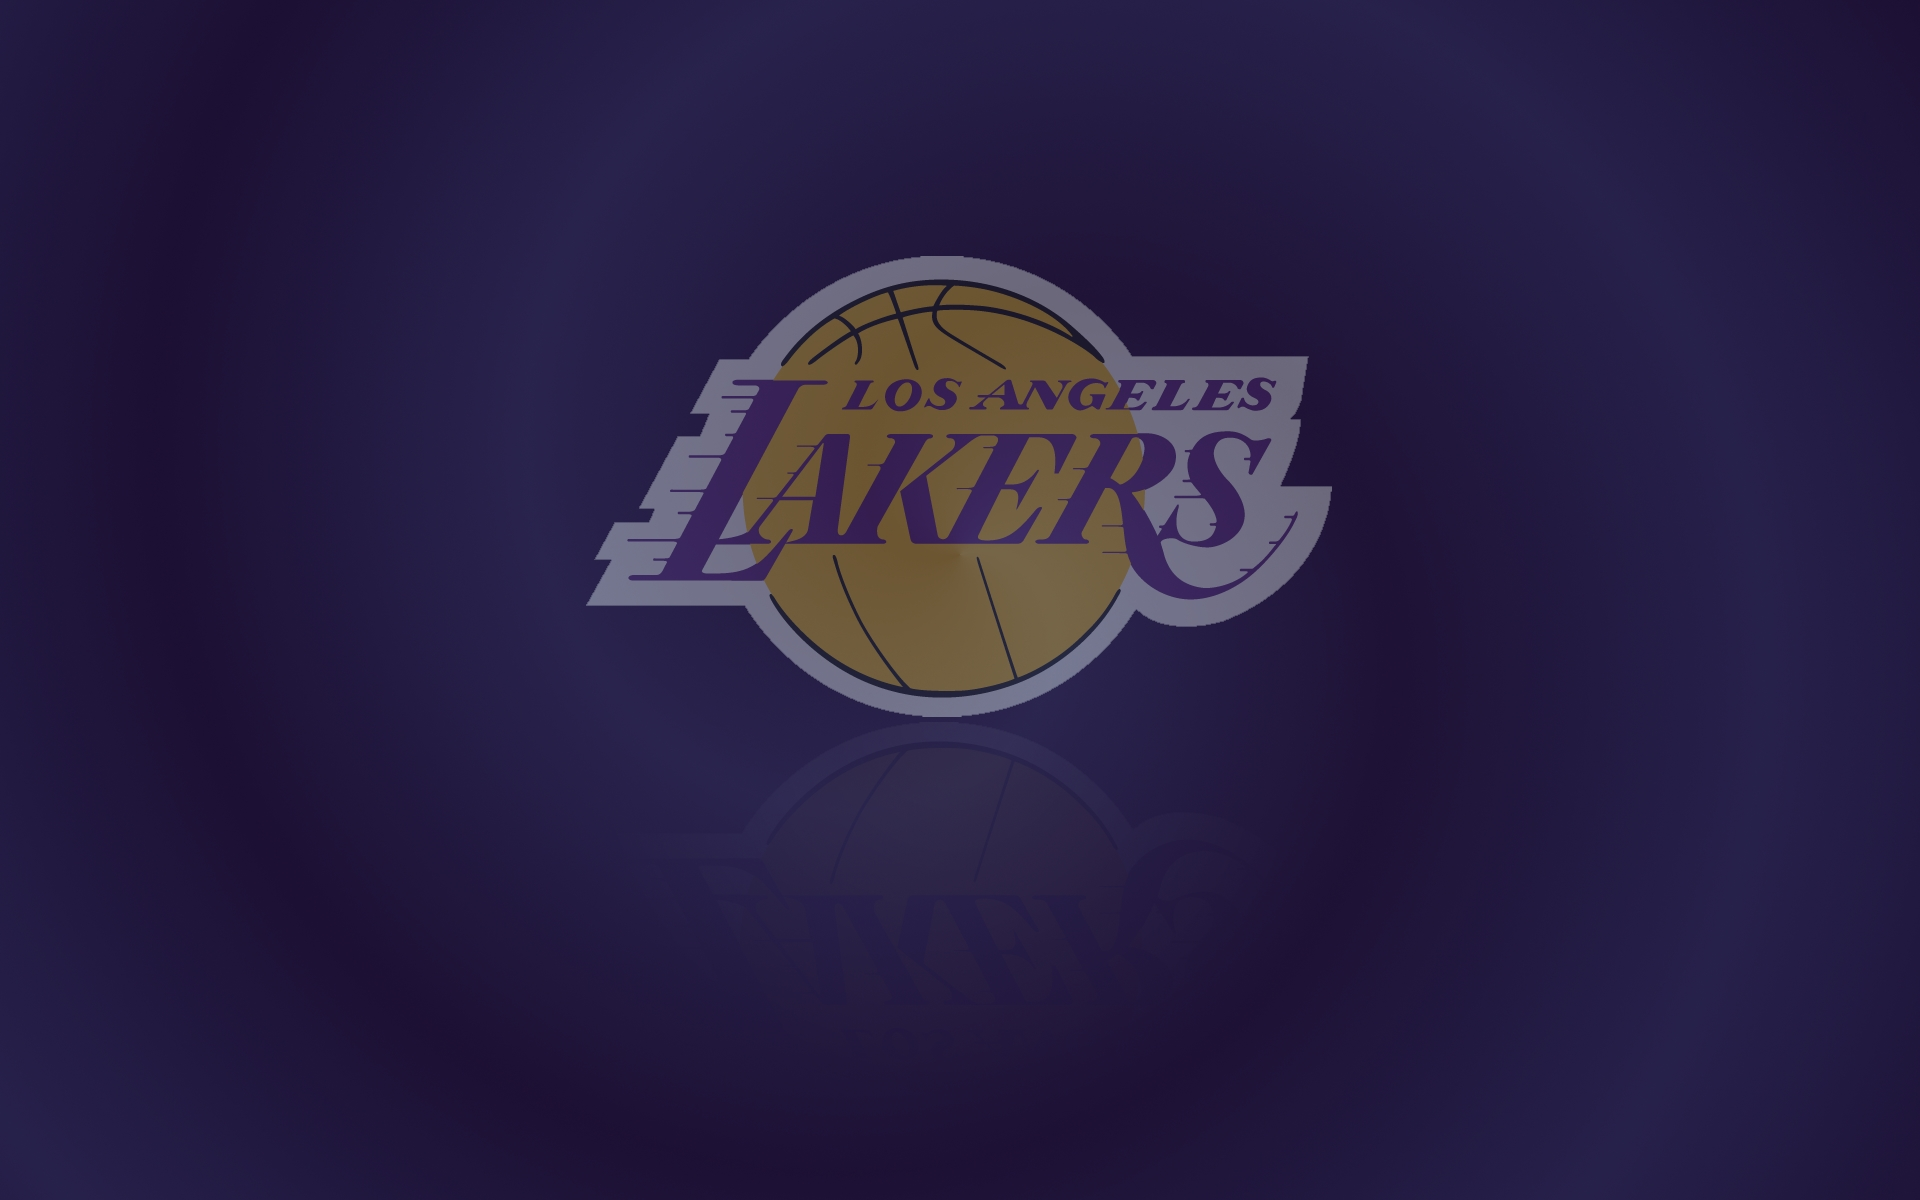 lakers wallpaper bing images